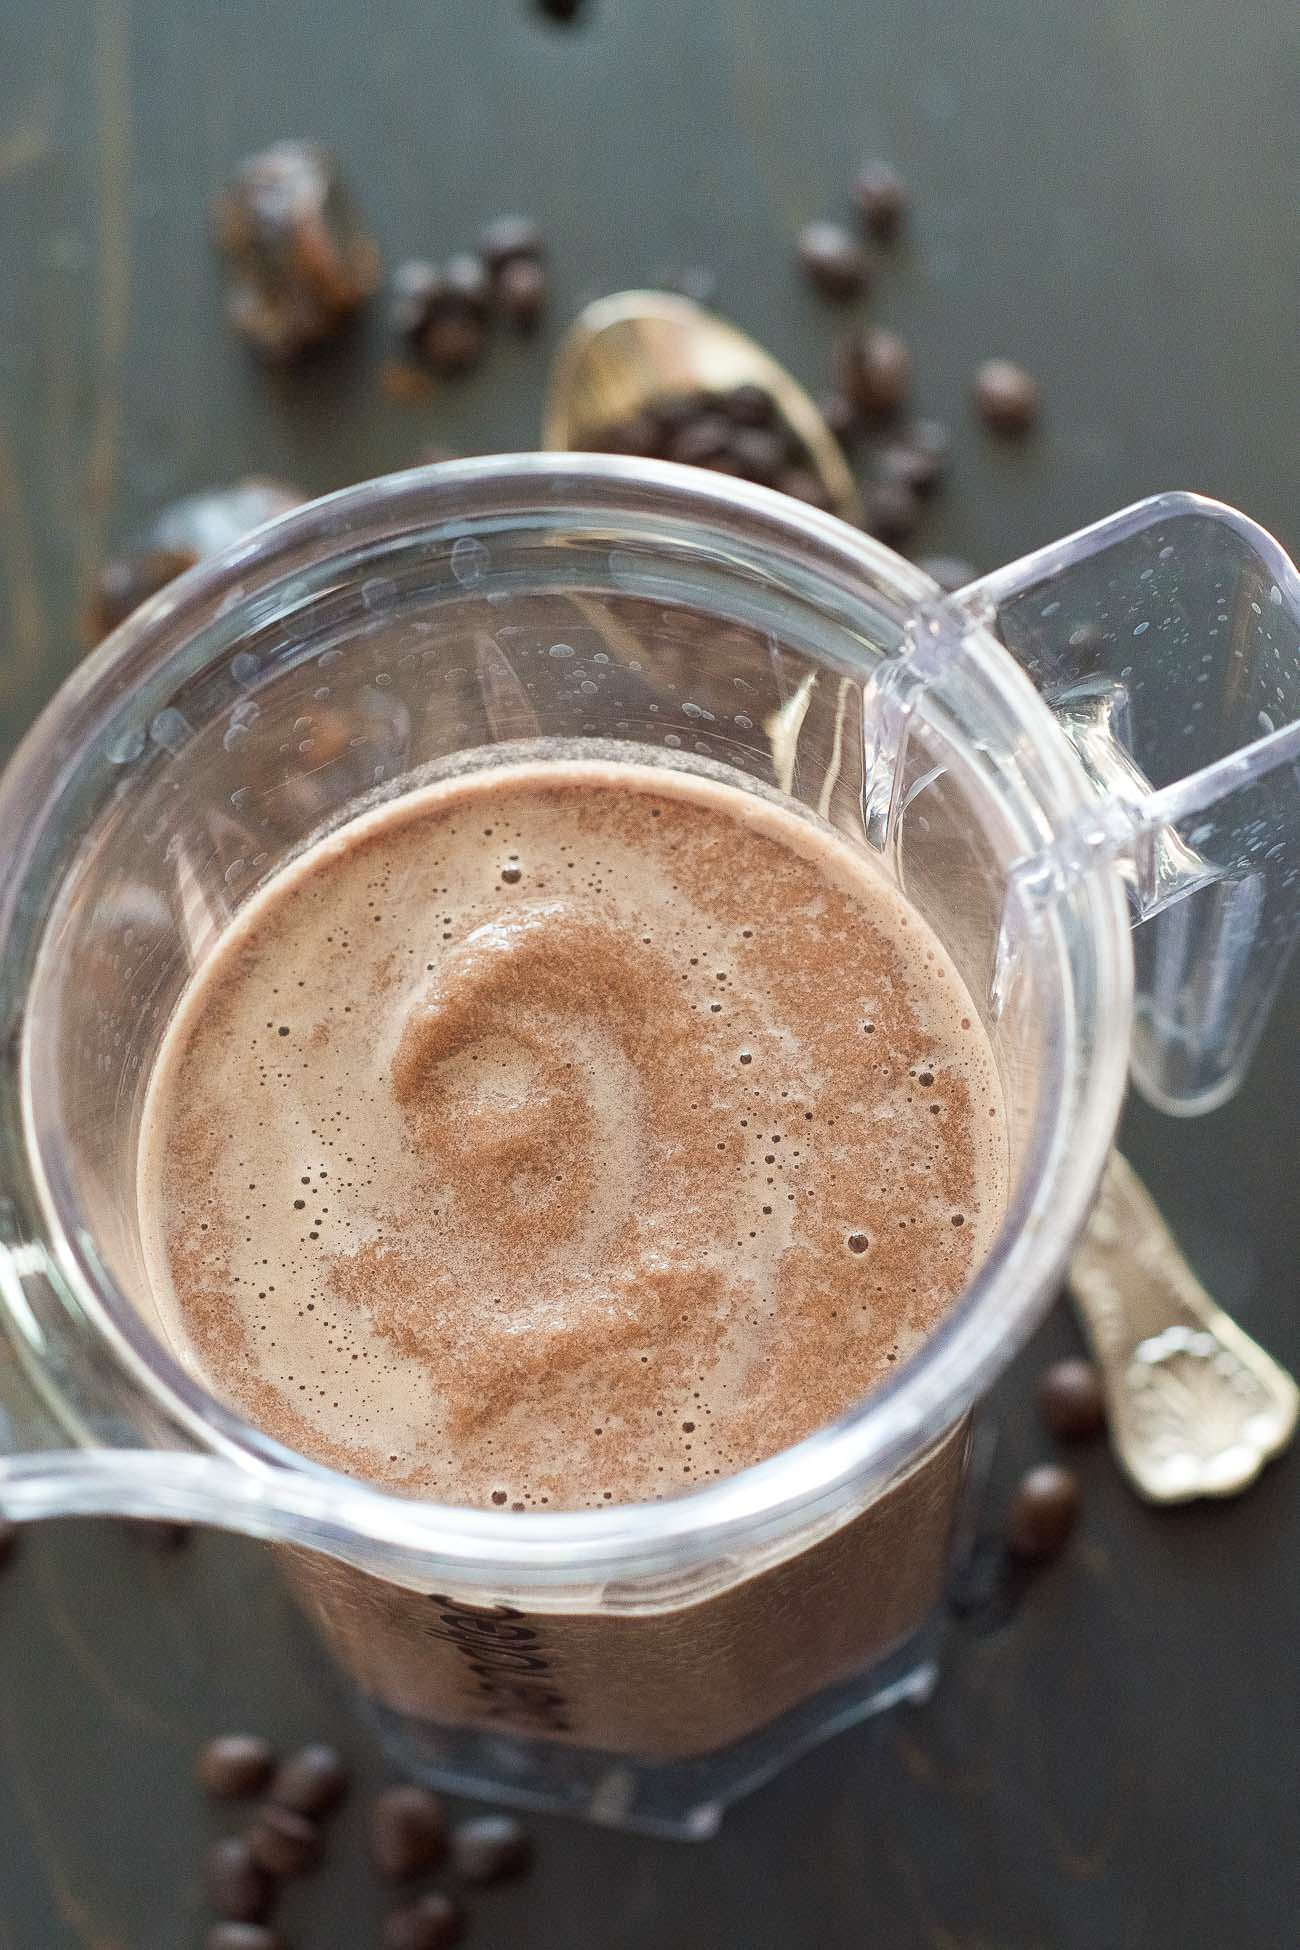 This Healthy Salted Caramel Mocha Smoothie is a delicious way to start your day! Flavors of coffee, rich chocolate and salty caramel all come together in a secretly healthy beverage!